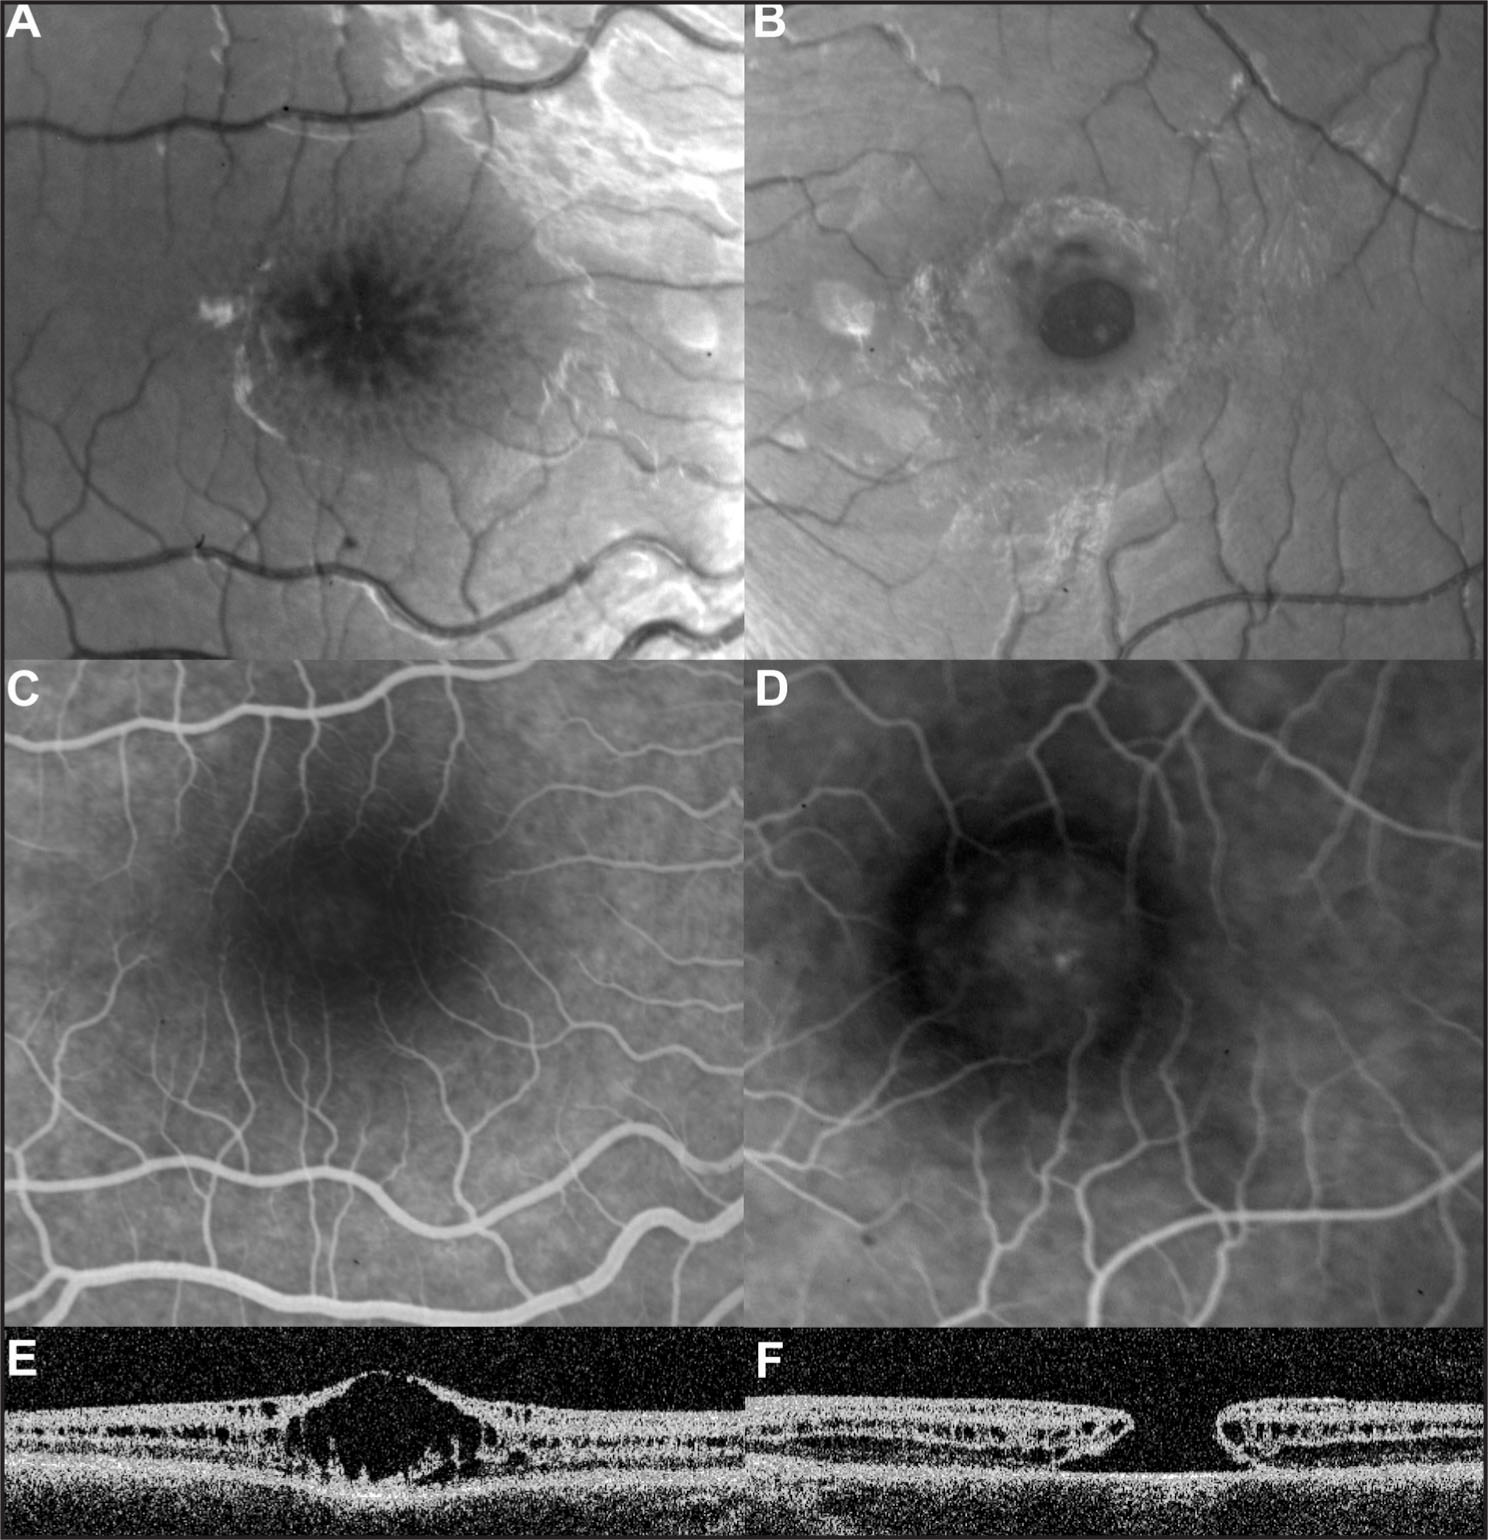 Imaging of the Right Eye Shows the Typical Stellate Maculopathy (A) Without Leakage During Fluorescein Angiography, Thus Differentiating from Cystoid Macular Edema (C), and Foveal Schitic Cavities on Optical Coherence Tomography (E). Imaging of the Left Eye Shows a Full-Thickness Macular Hole (B), with Hyperfluorescence in the Area of the Retinal Defect During Fluorescein Angiography (D), and Unequivocal Diagnosis Is Obtained with Optical Coherence Tomography that also Reveals Schitic Cavities Surrounding the Hole (F).